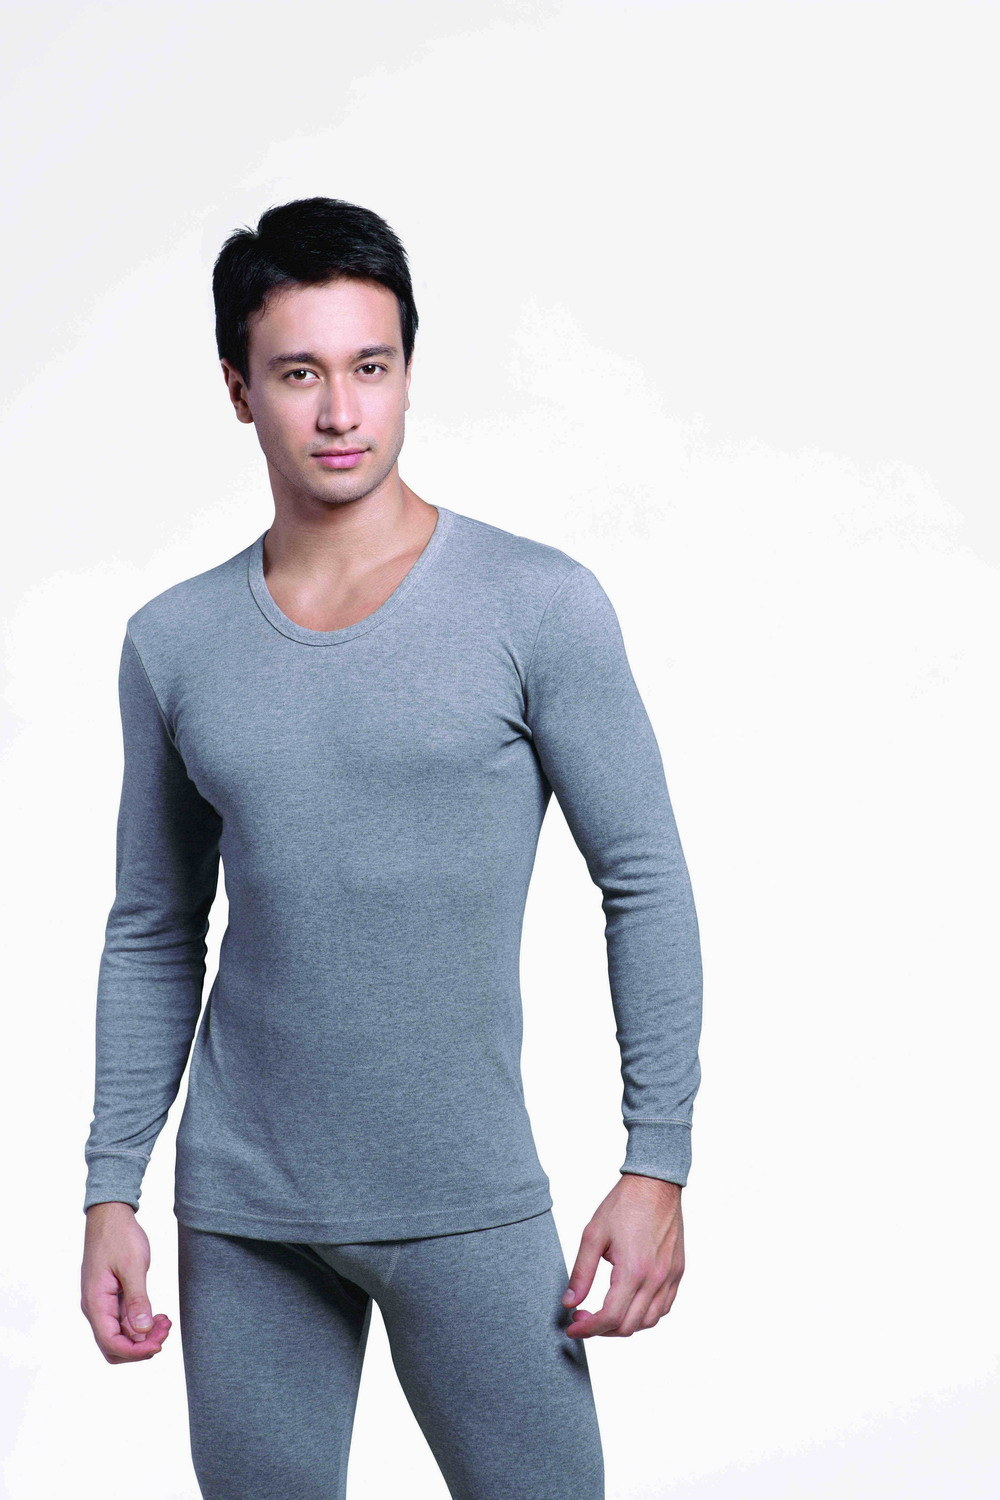 Working outside on those cold, blustery days calls for Men's Heavyweight Deluxe Thermal Underwear. Made of a cotton and polyester blend, the underwear combines the comfort of cotton with the strength and durability of polyester.